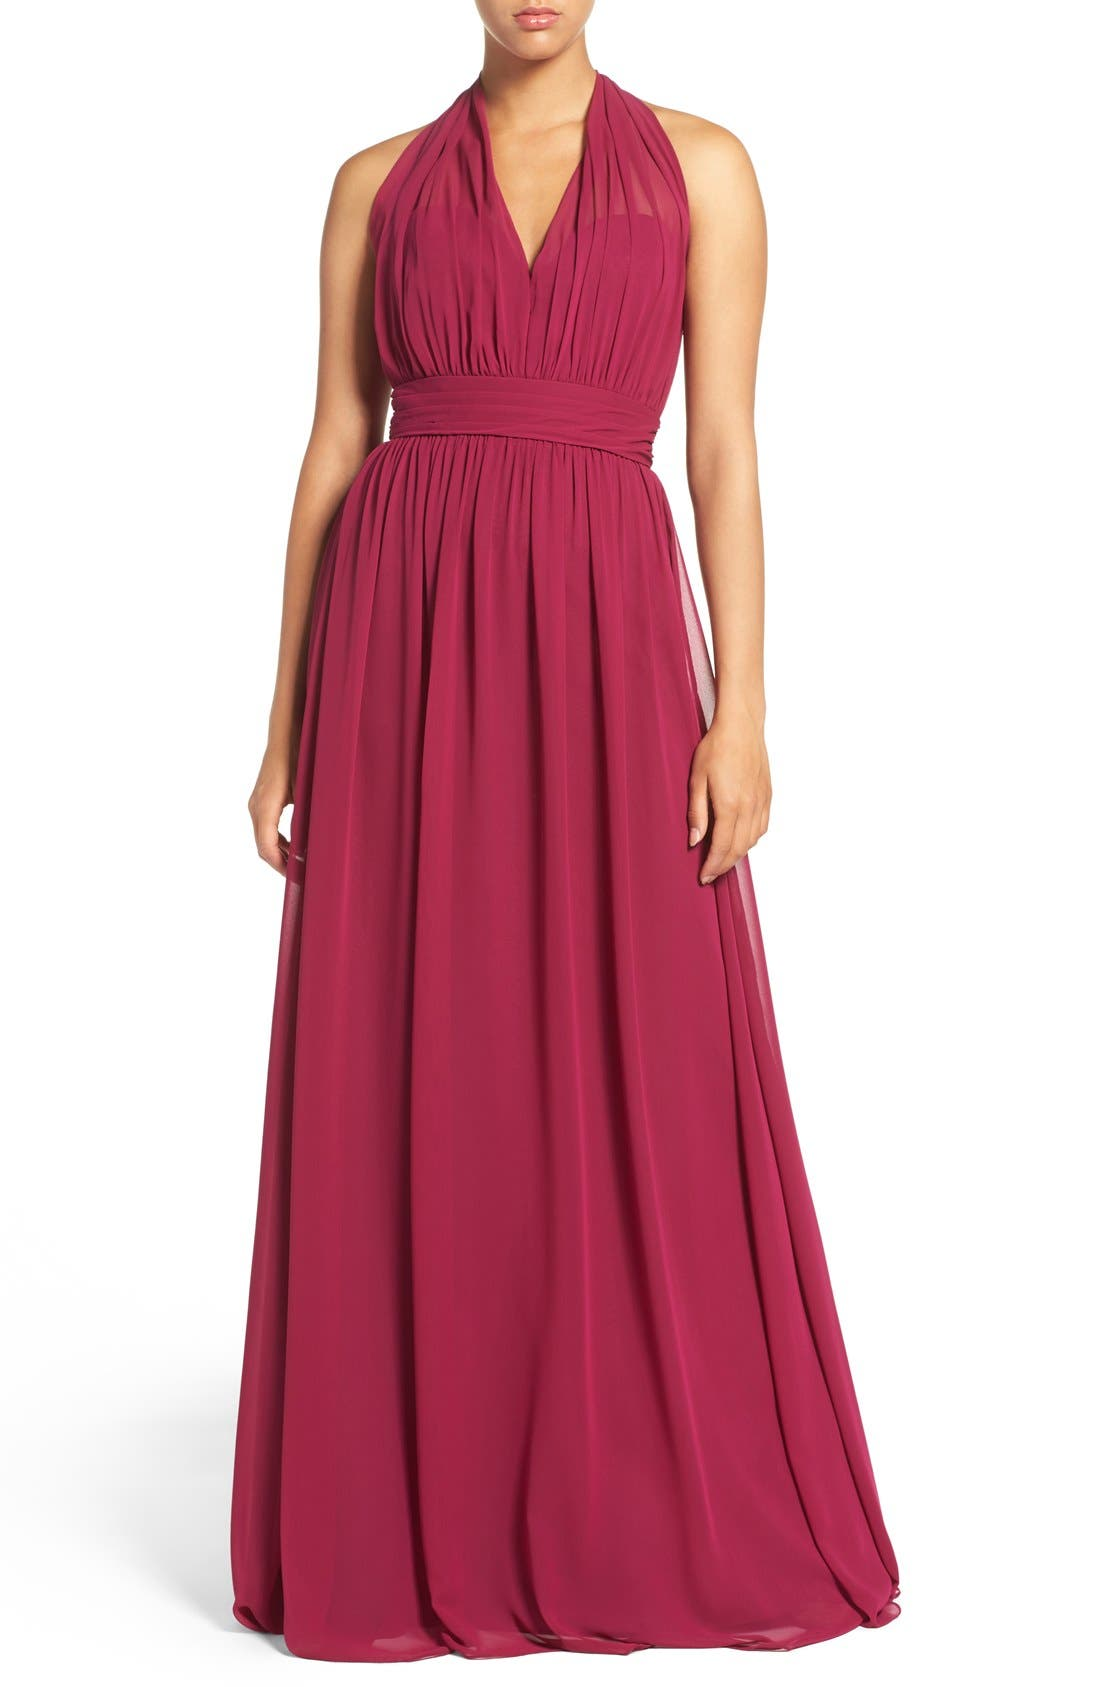 Alternate Image 1 Selected - Hayley Paige Occasions Ruched Waist Chiffon Halter Gown